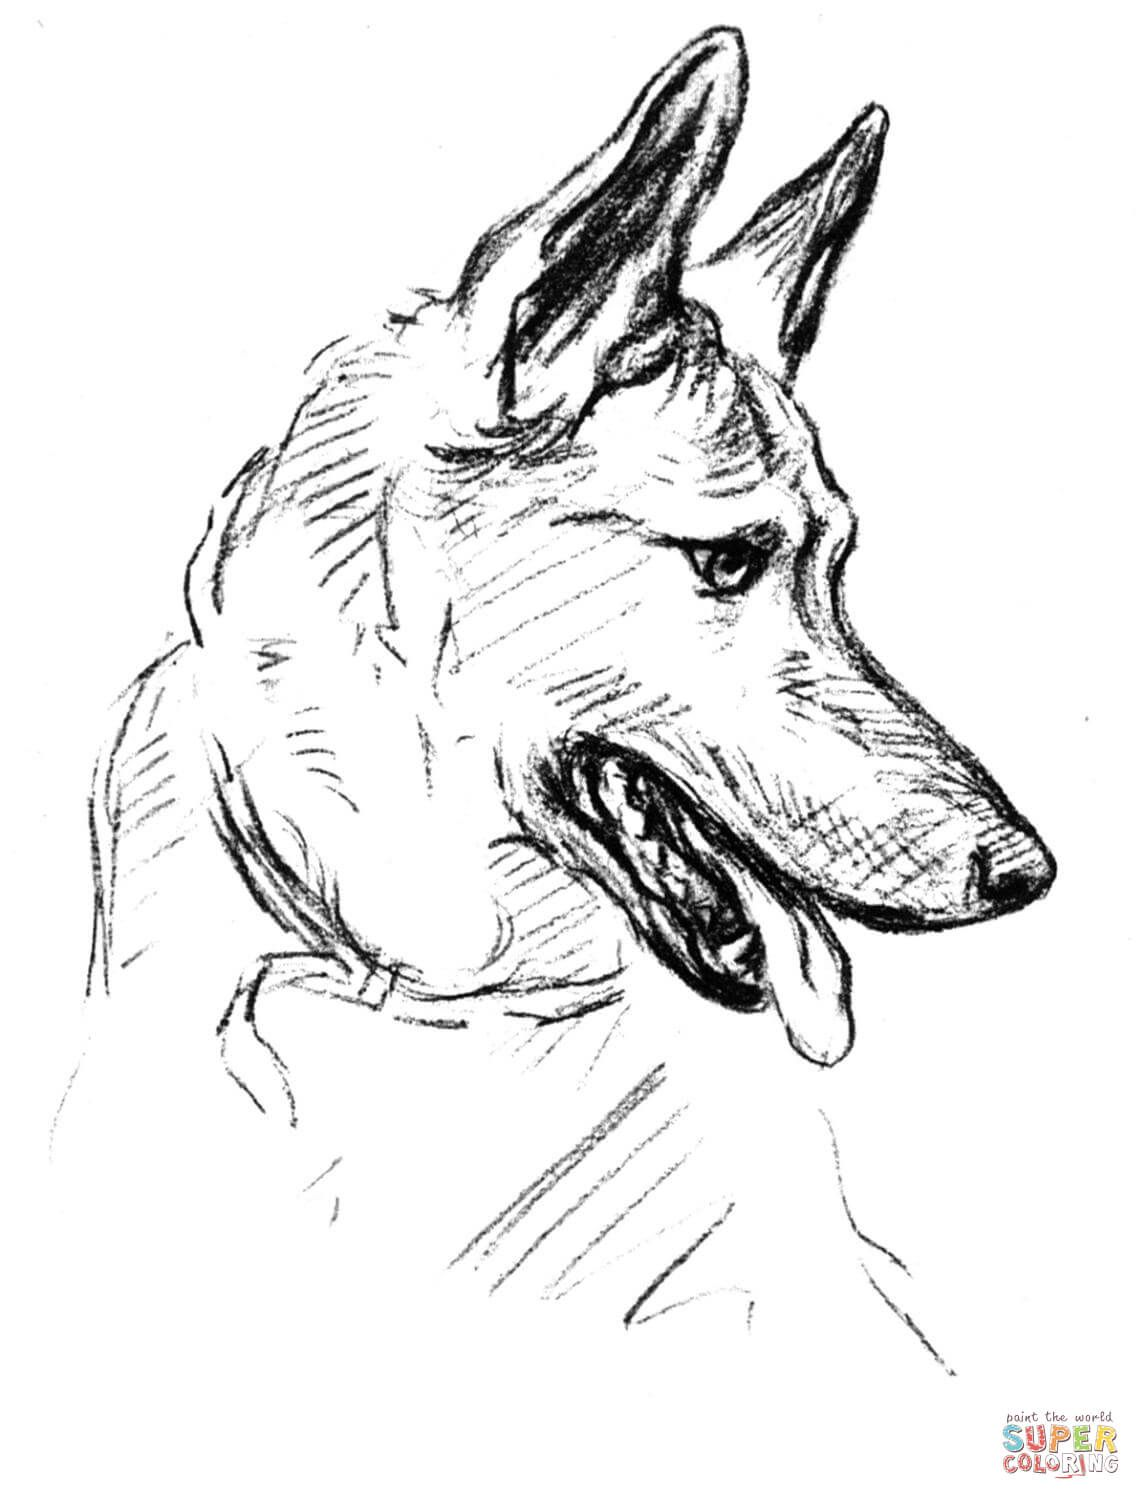 german shepherd dog portrait coloring page free printable - German Shepherd Coloring Pages